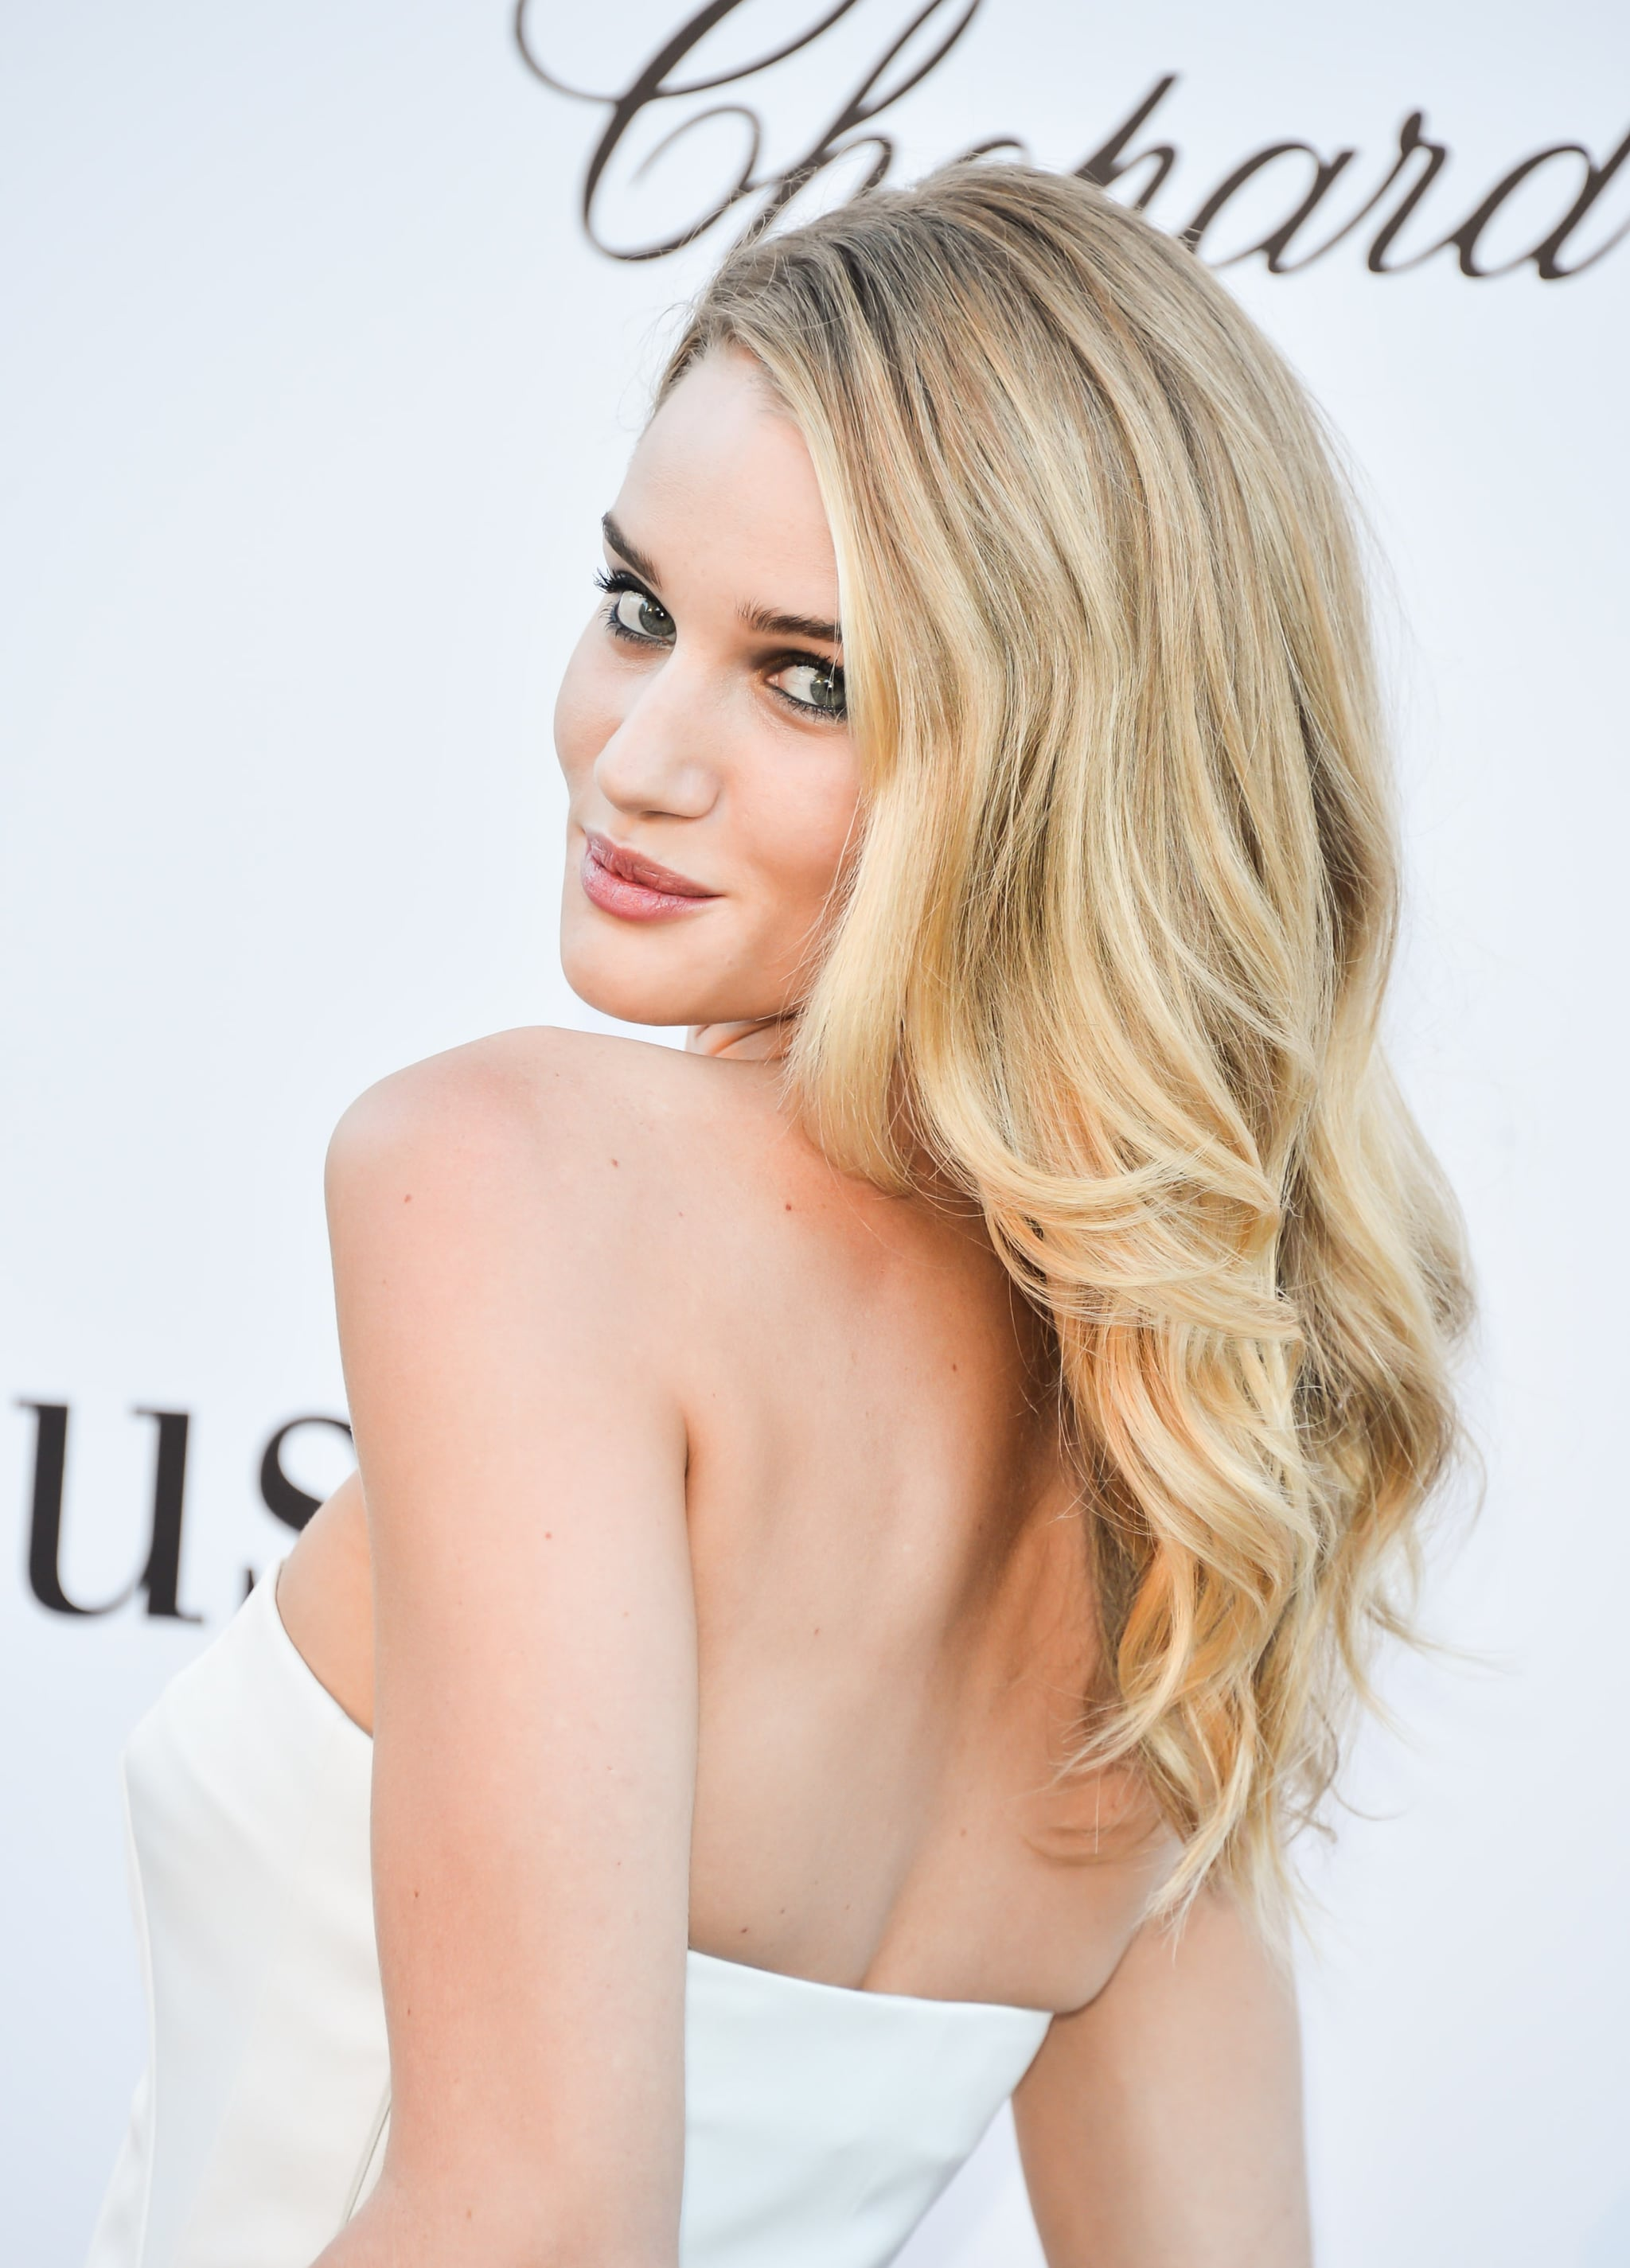 Rosie Huntington-Whiteley gave her beachy waves a glamorous spin on the red carpet.